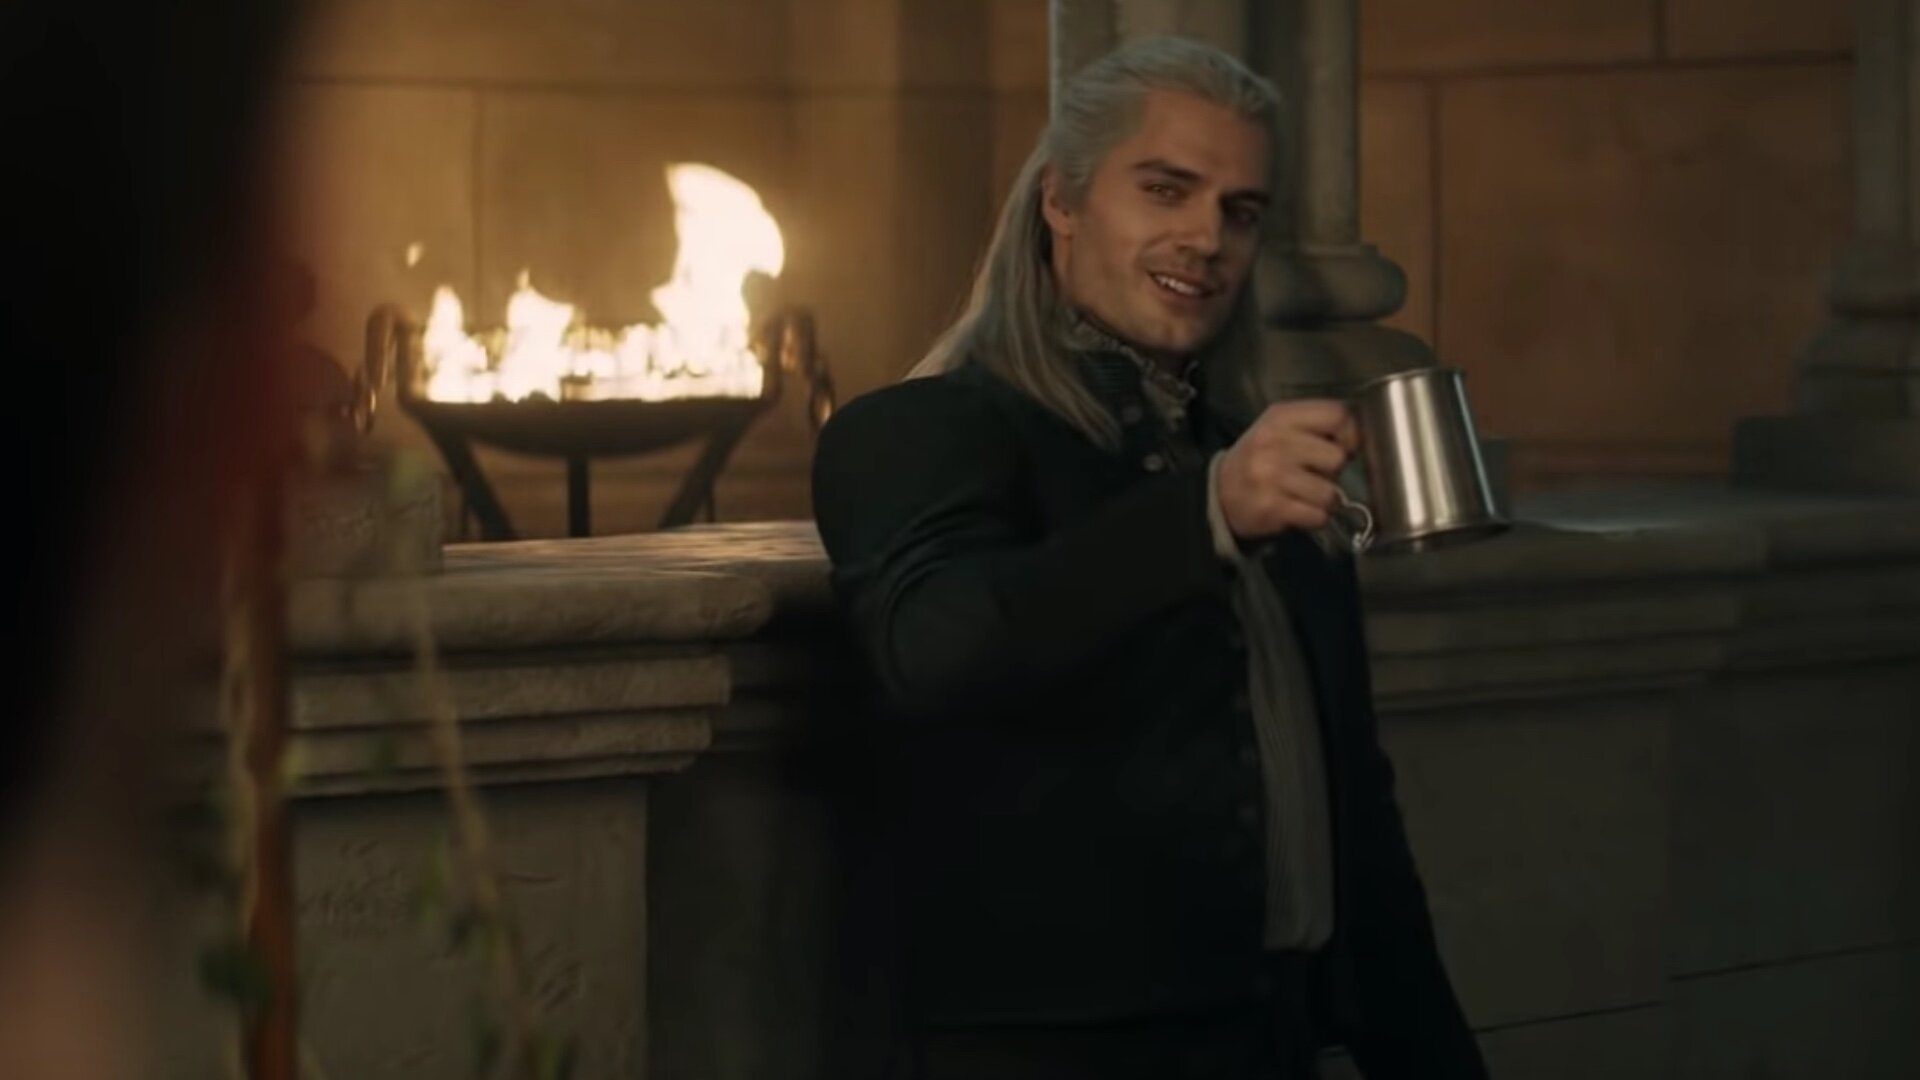 THE WITCHER Gets a Fan-Made FRIENDS-Style Trailer and a 90s VHS Trailer